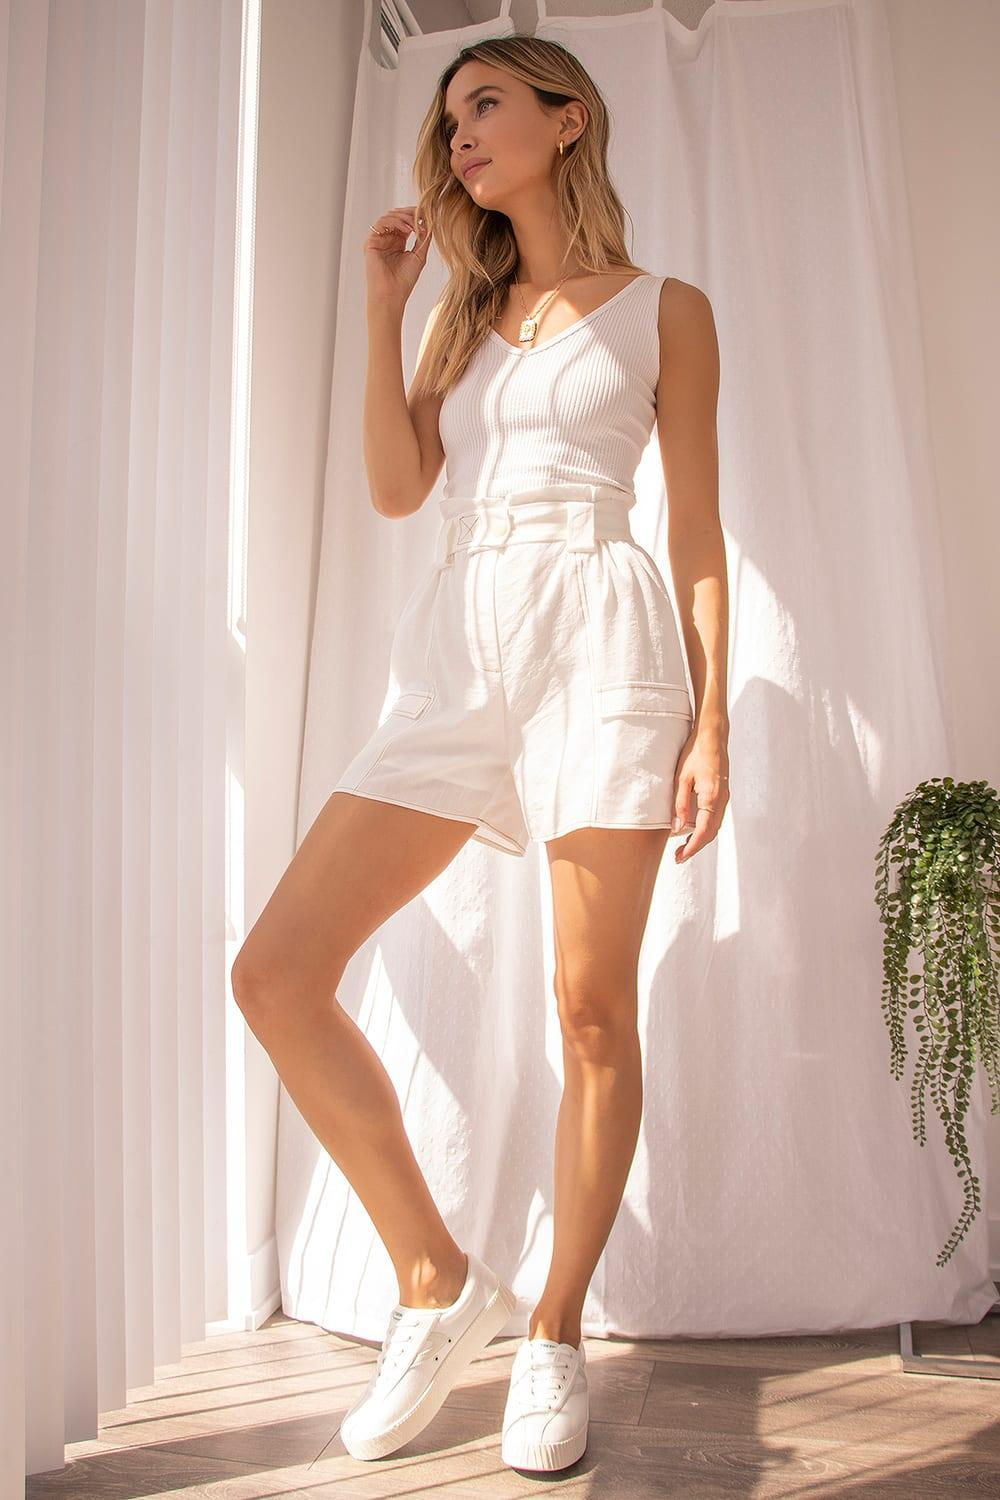 White cotton loungewear for lazy summer vacation